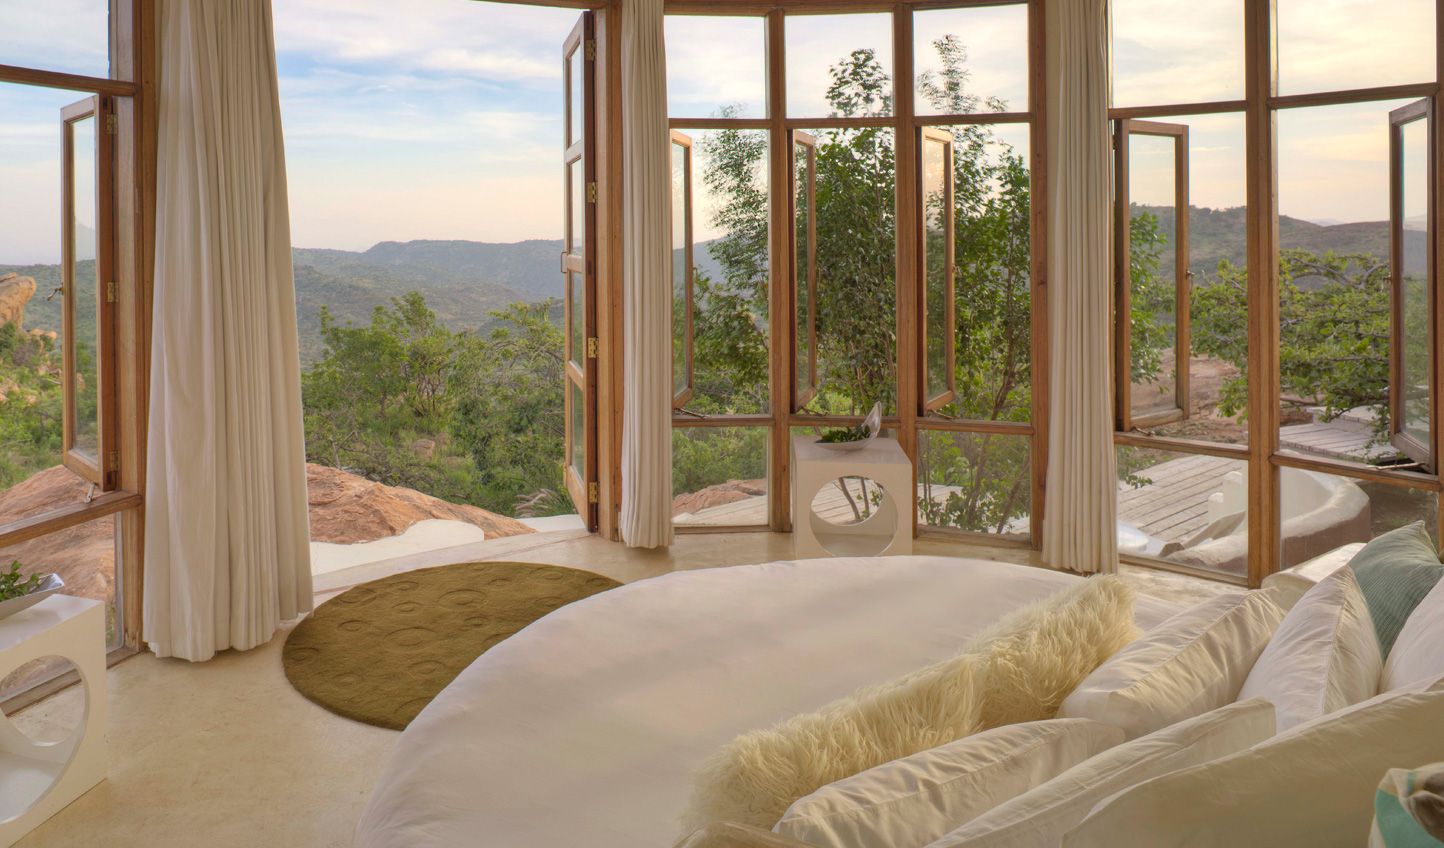 Wake up to views across Laikipia from the Eyrie at Ol Lentille